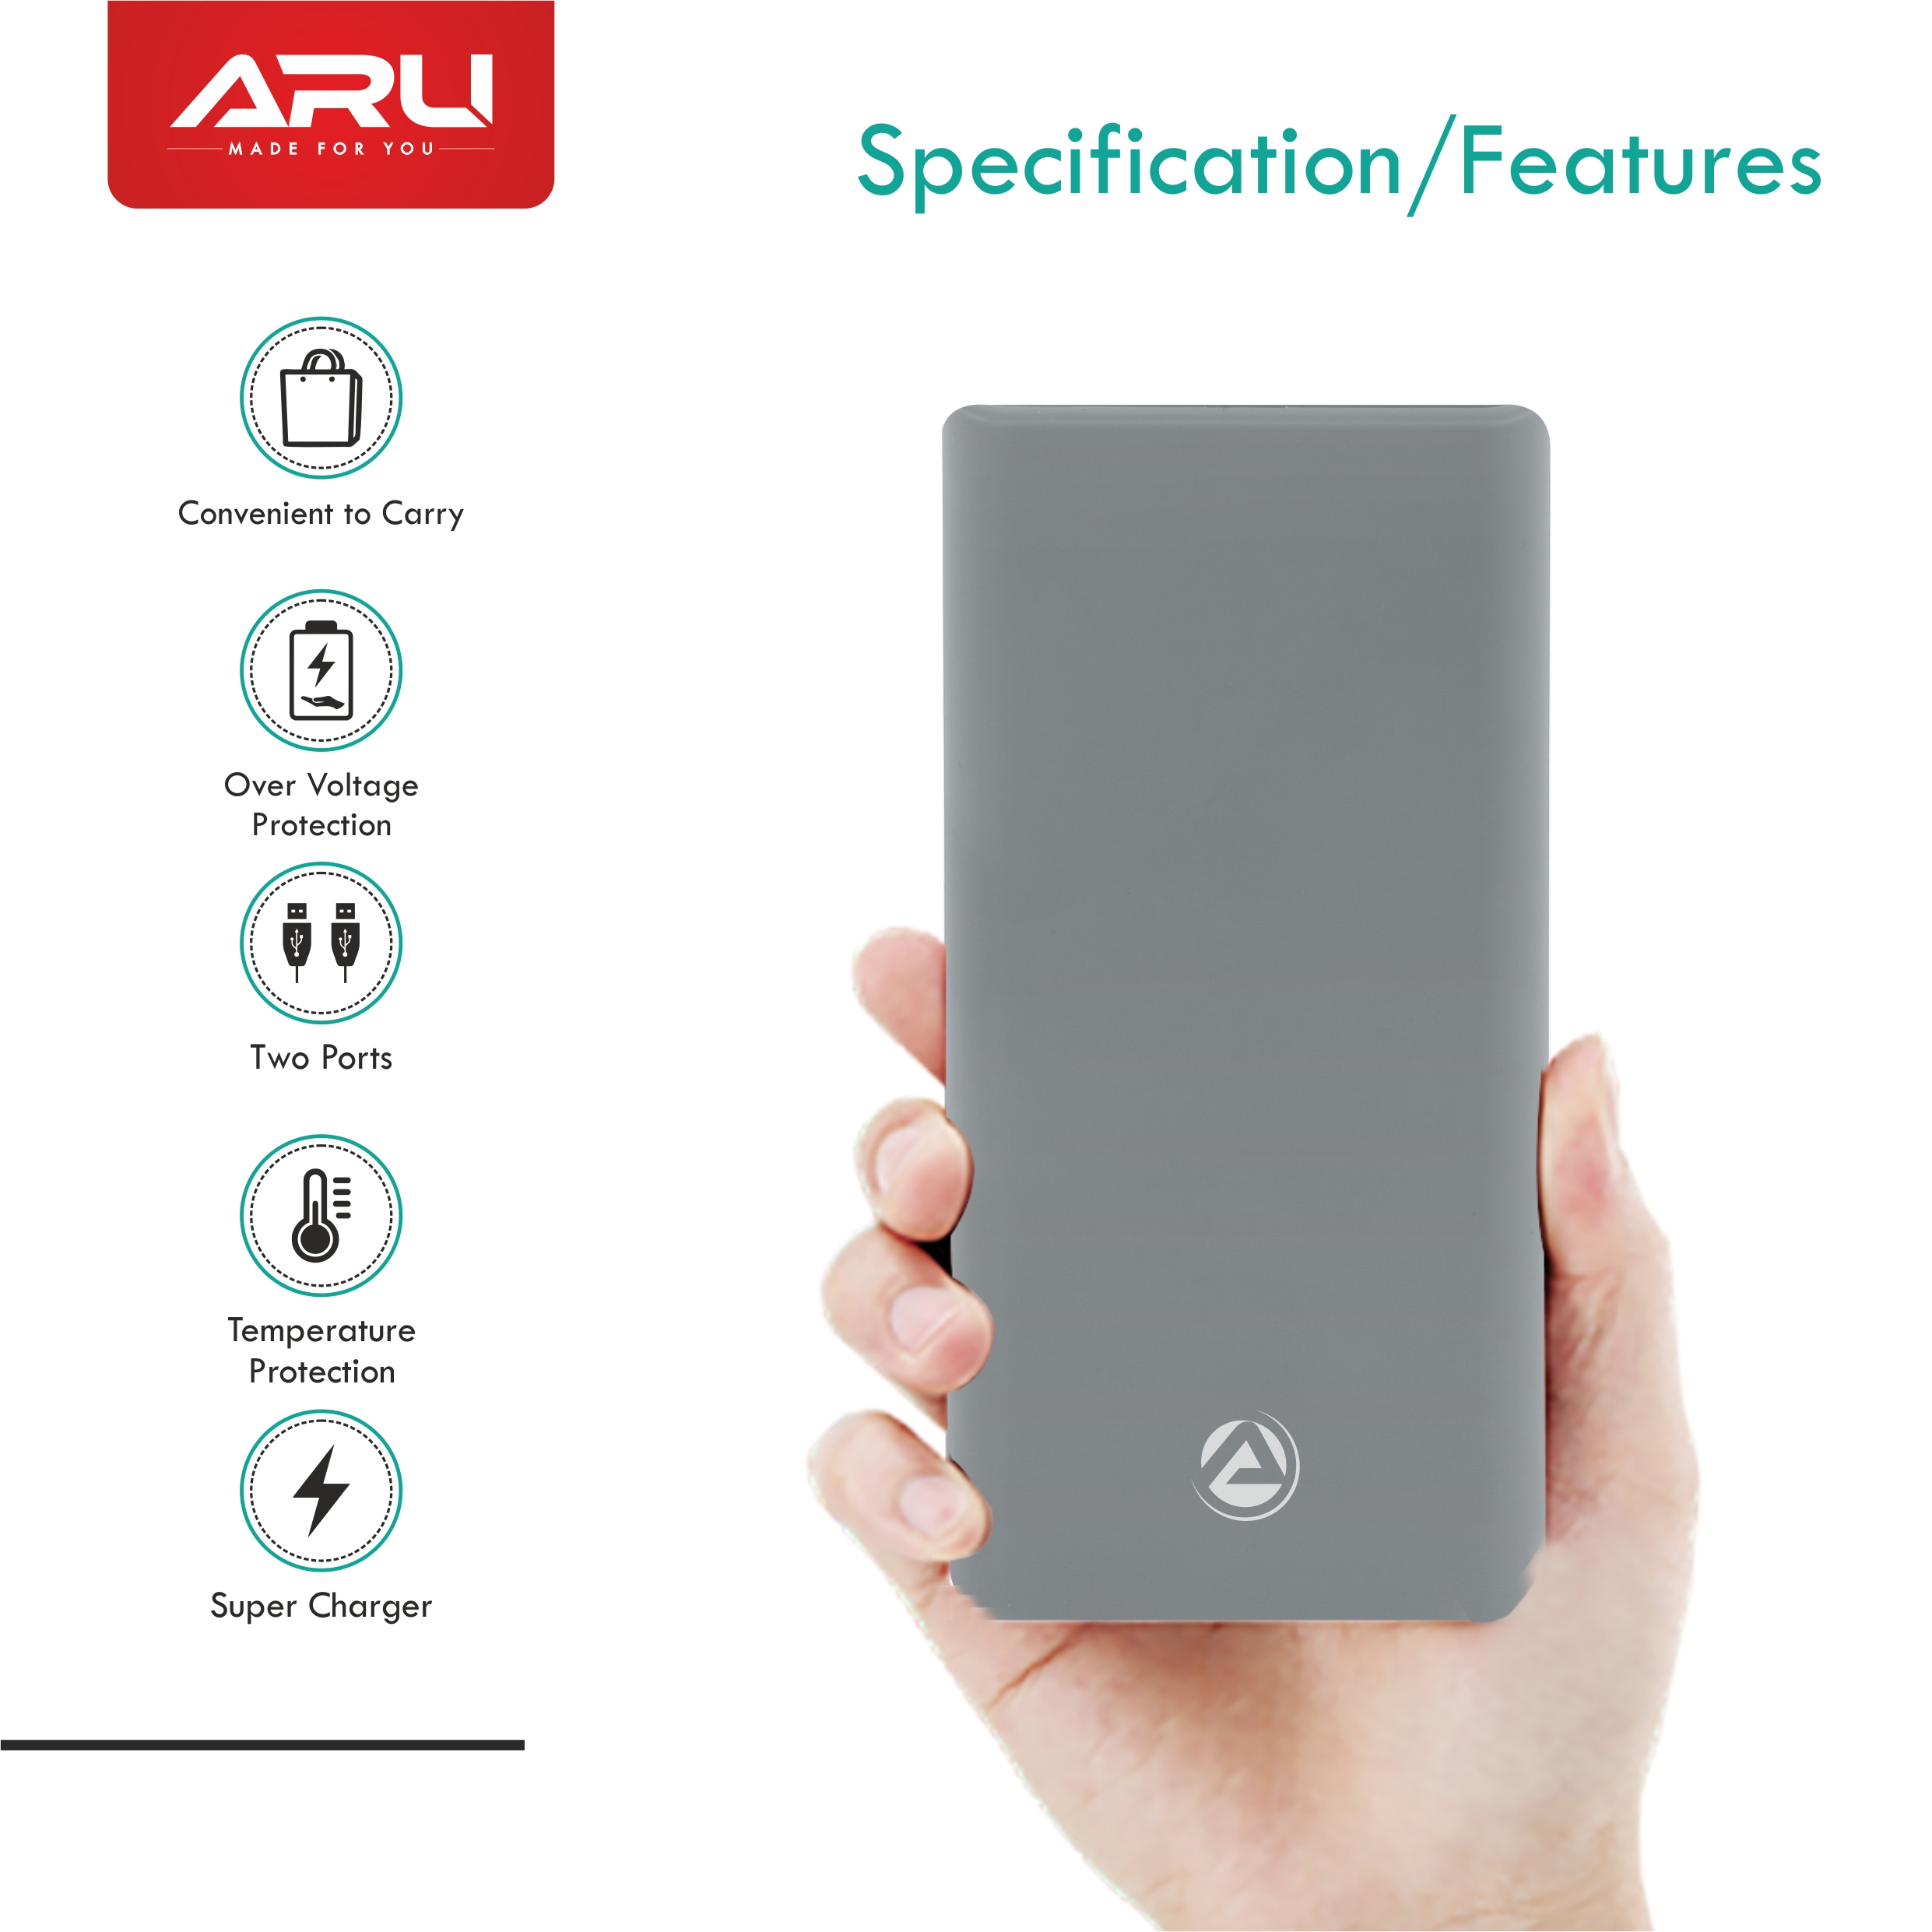 ARU APB-3010 Smallest 20000mAh Li-Polymer Power Bank - Grey